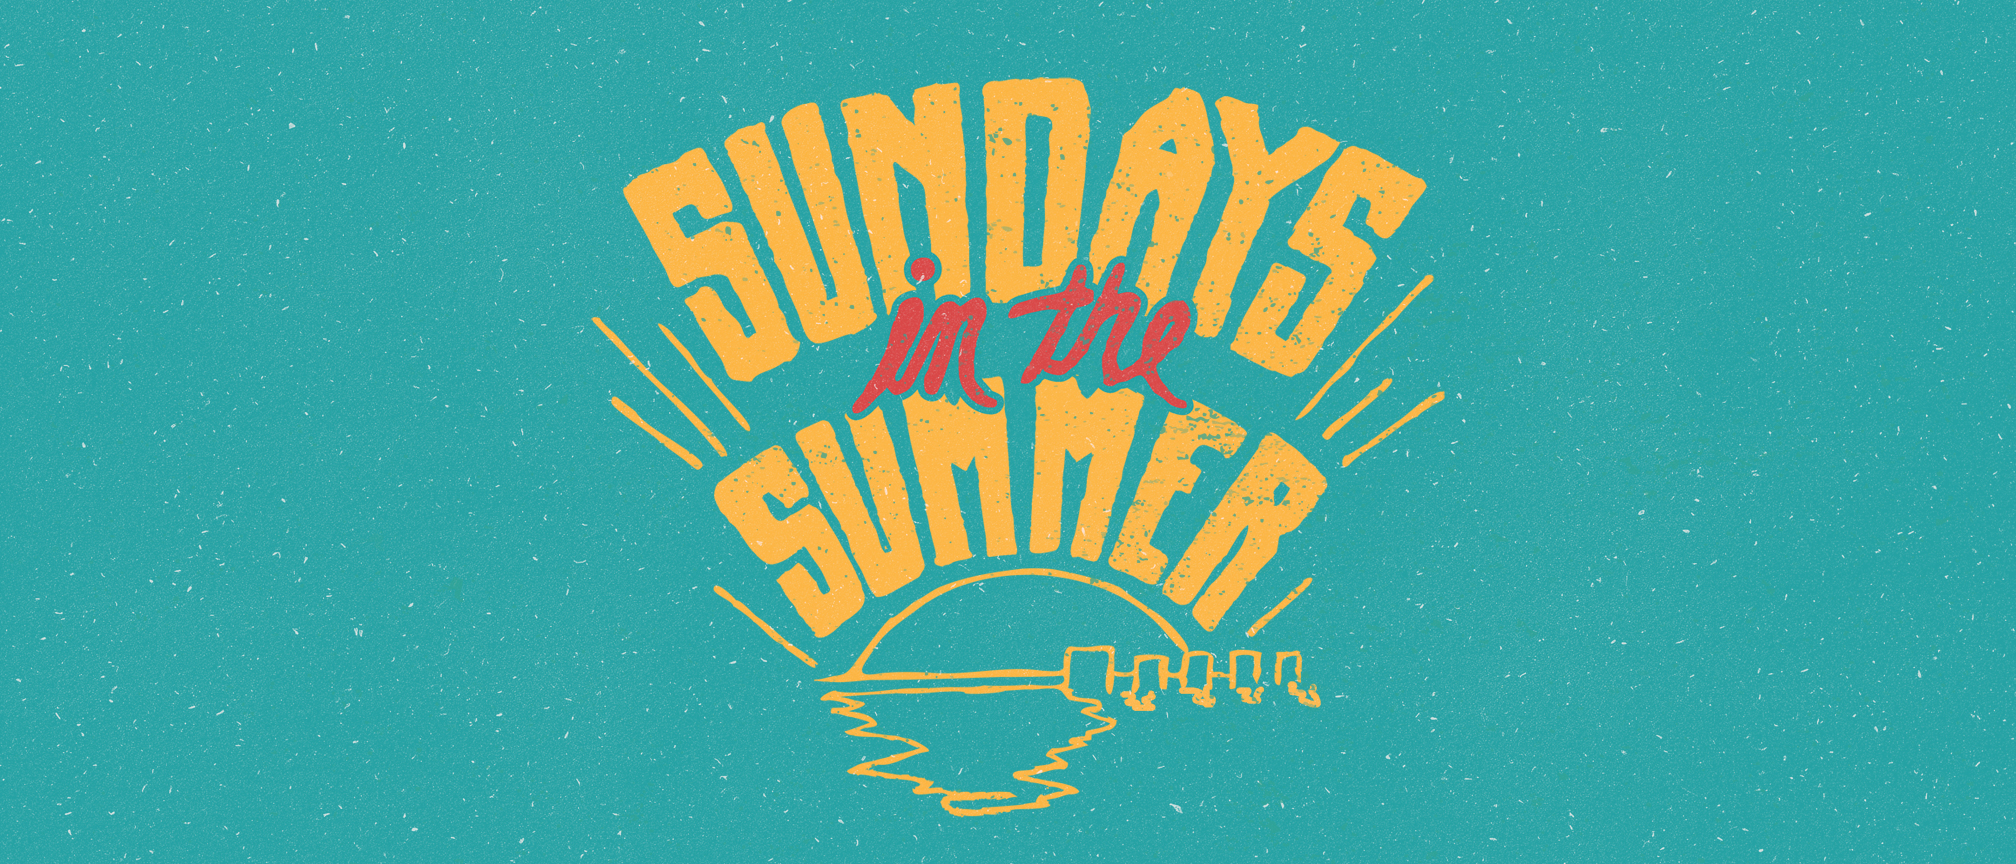 Our third Sundays in the Summer event will be held at a Fireflies game on June 26th at 5:05 pm. We will al be sitting on the Berm supporting our Fireflies, anyone and everyone is welcome! Cost of admission and food will not be provided.